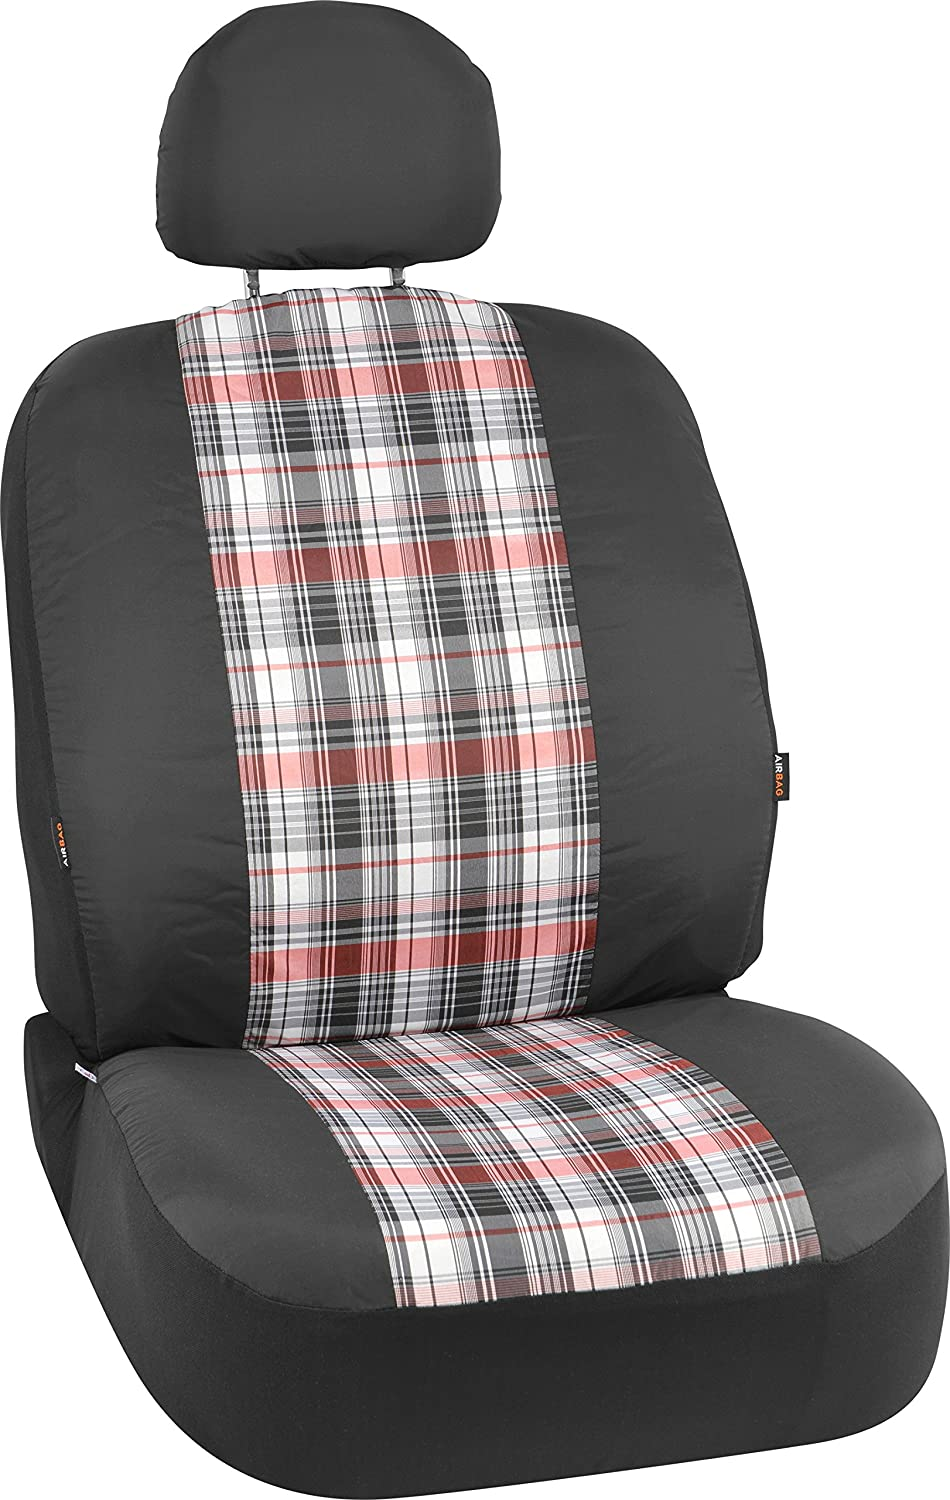 Bell Automotive 22-1-56863-9 Black Plaid Low-Back Bucket Seat Cover